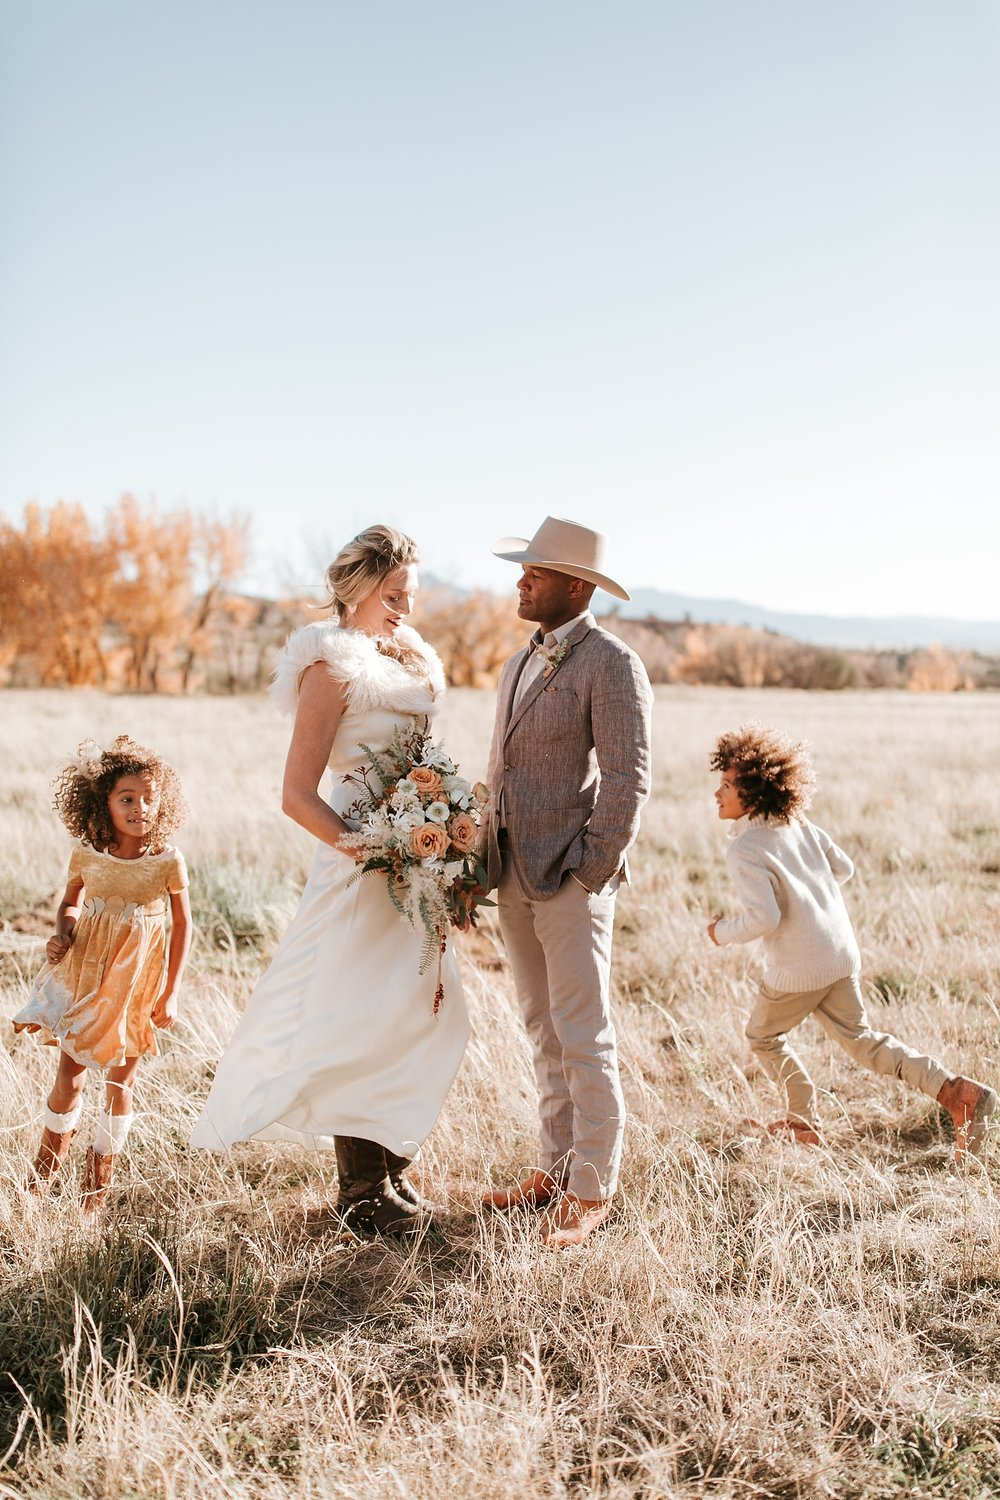 Alicia+lucia+photography+-+albuquerque+wedding+photographer+-+santa+fe+wedding+photography+-+new+mexico+wedding+photographer+-+new+mexico+ghost+ranch+wedding+-+styled+wedding+shoot_0029.jpg